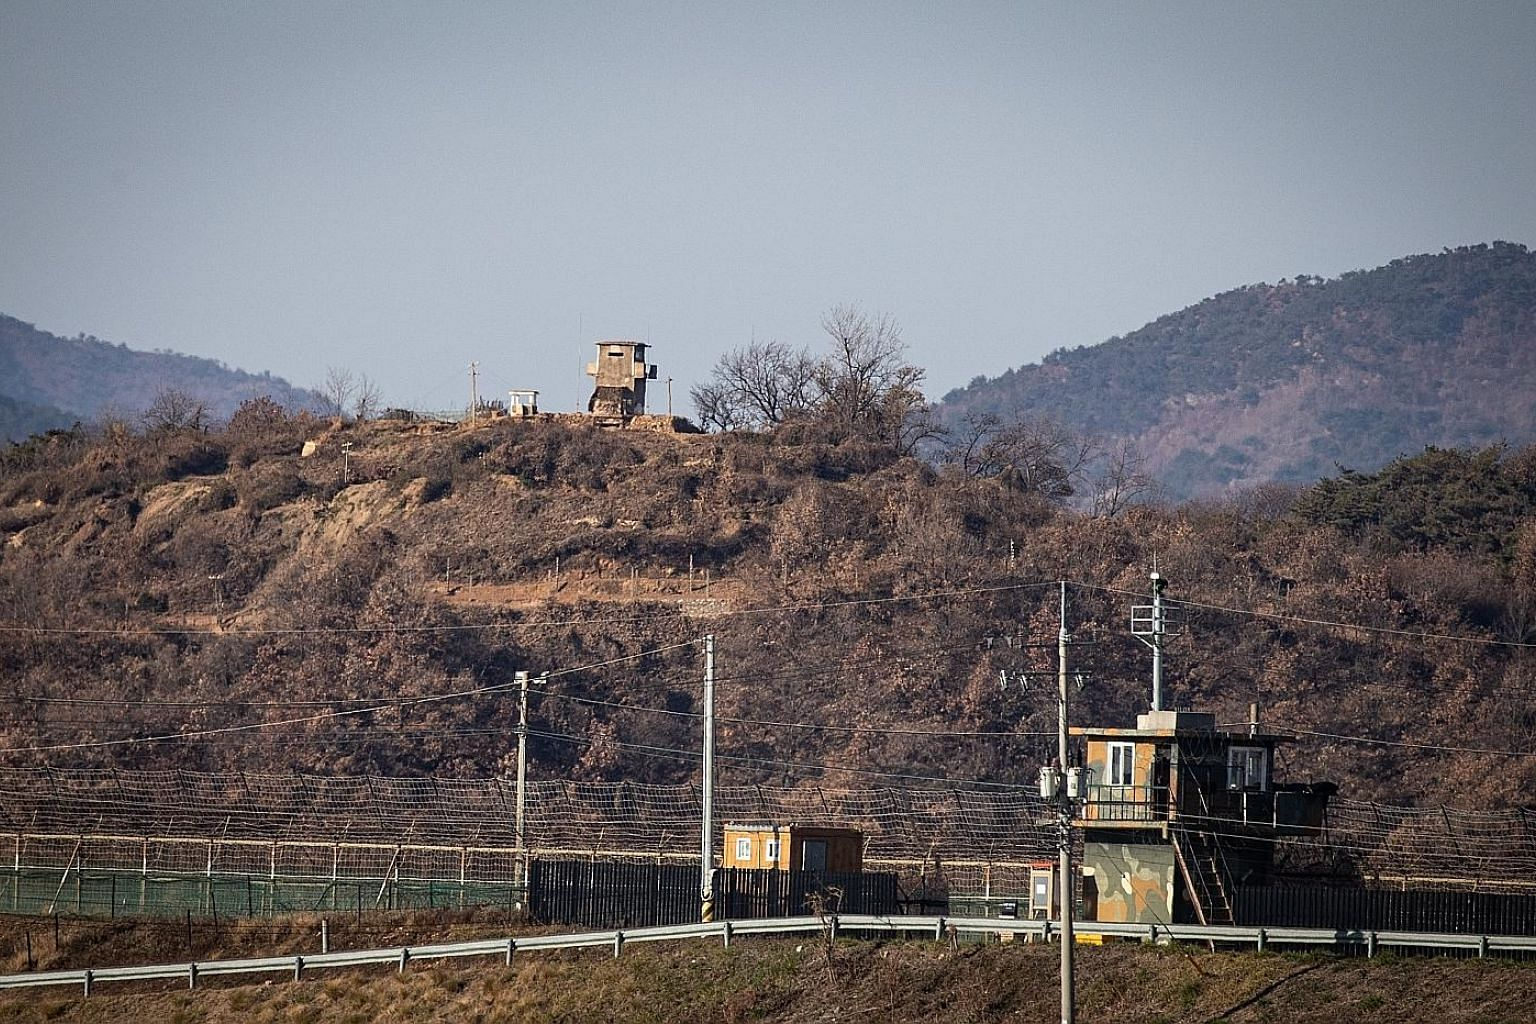 A South Korean sentry post (foreground) and a North Korean one facing each other across the border in Paju, Gyeonggi-do, South Korea. Activity at the North's Sohae rocket launch facility includes what appears to be a newly arrived shipping container